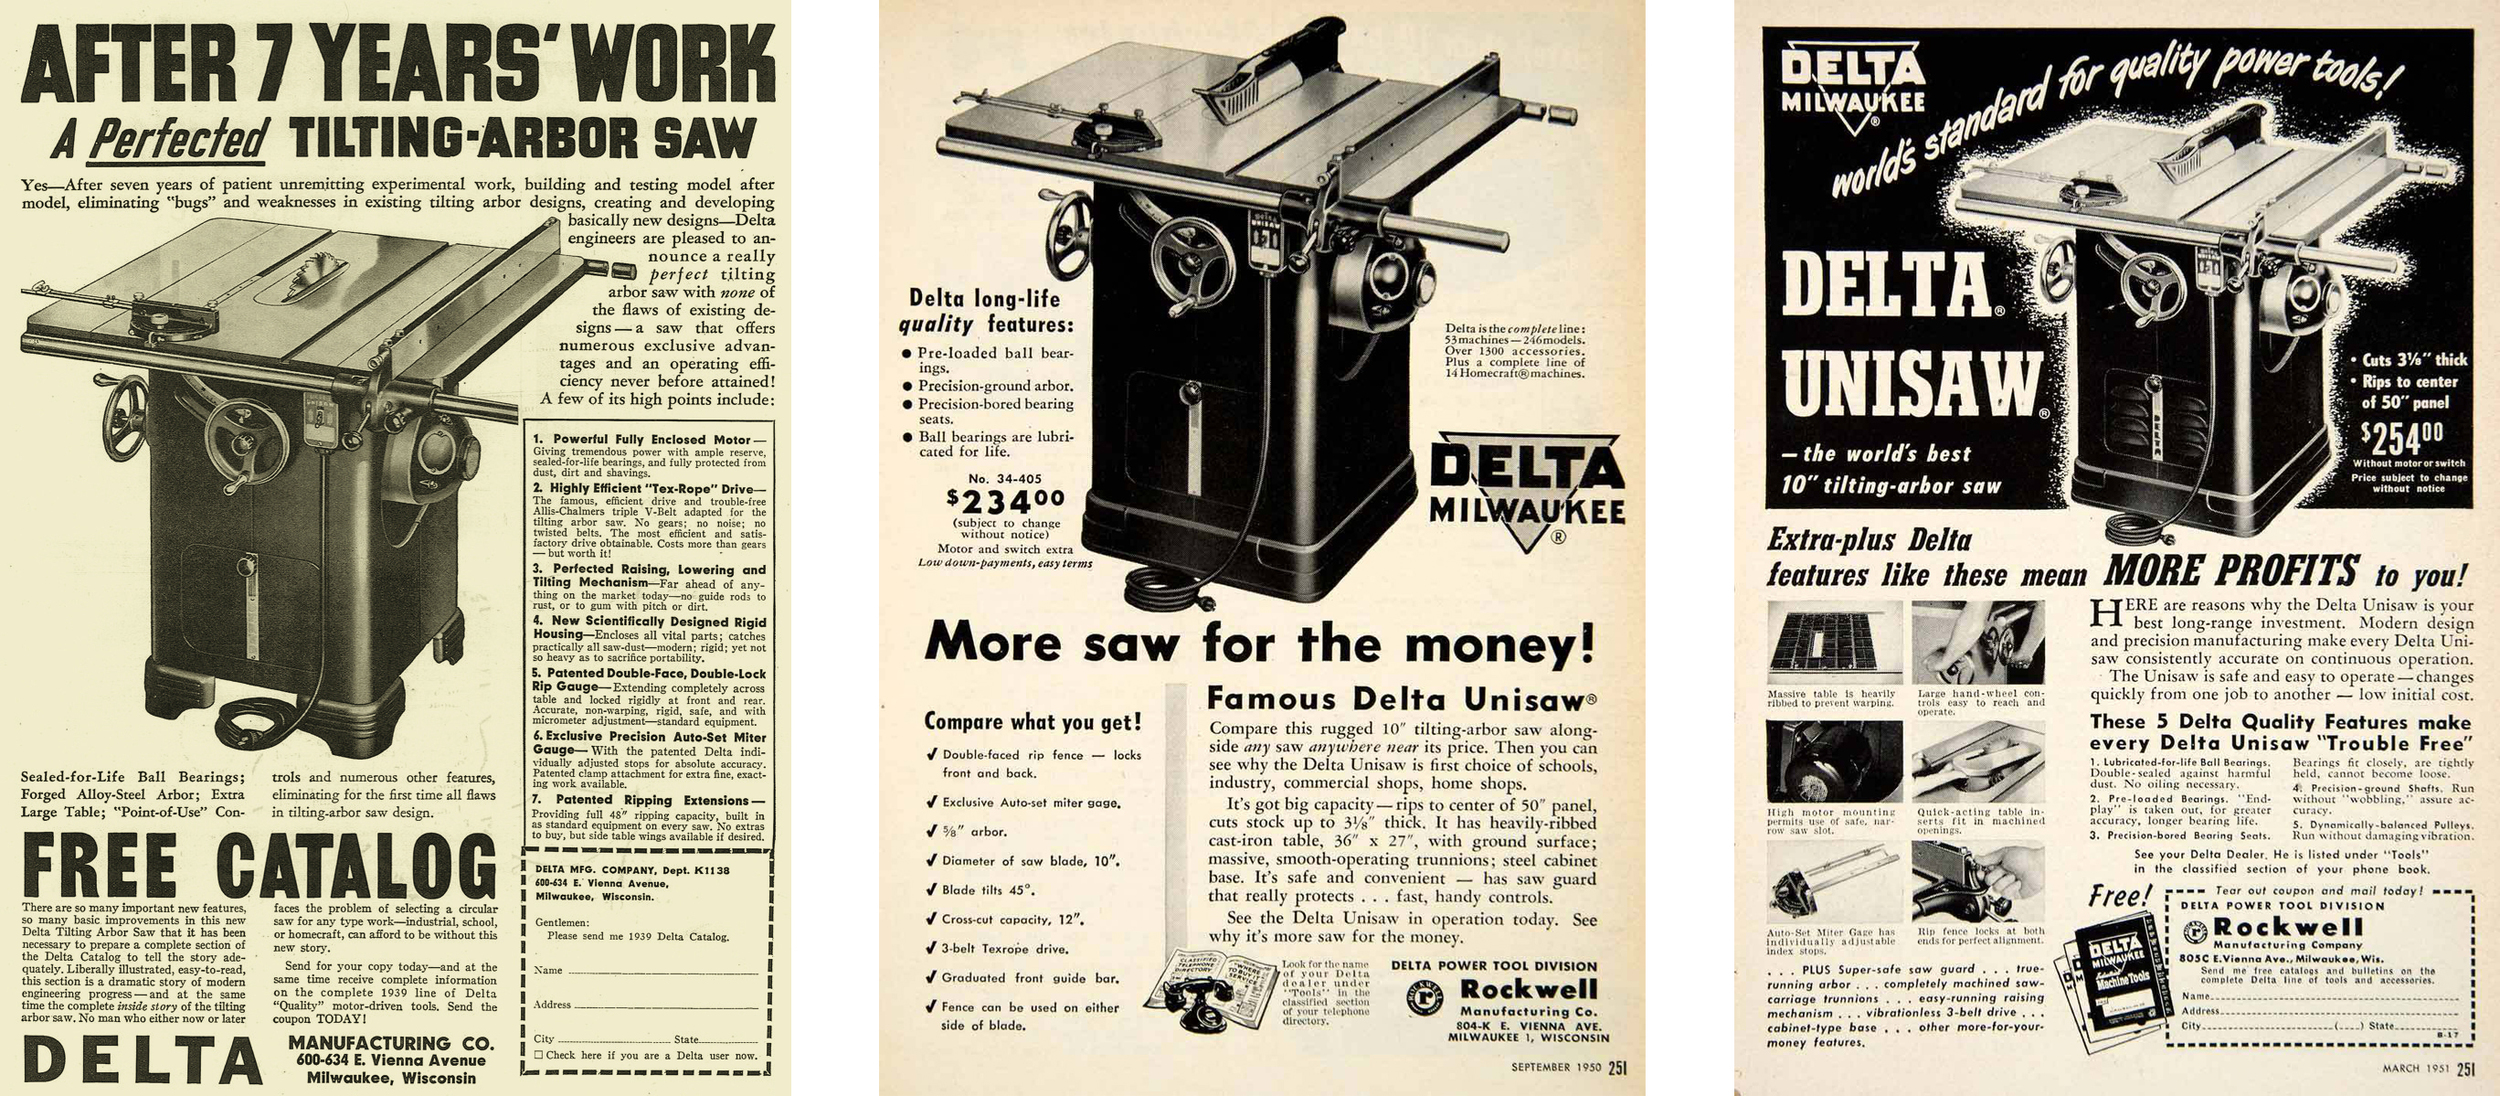 1939, 1950 and 1951 ads for the Delta Unisaw. In 1950, the saw was listed at $234, with motor and switch being an extra charge. Click to enlarge.